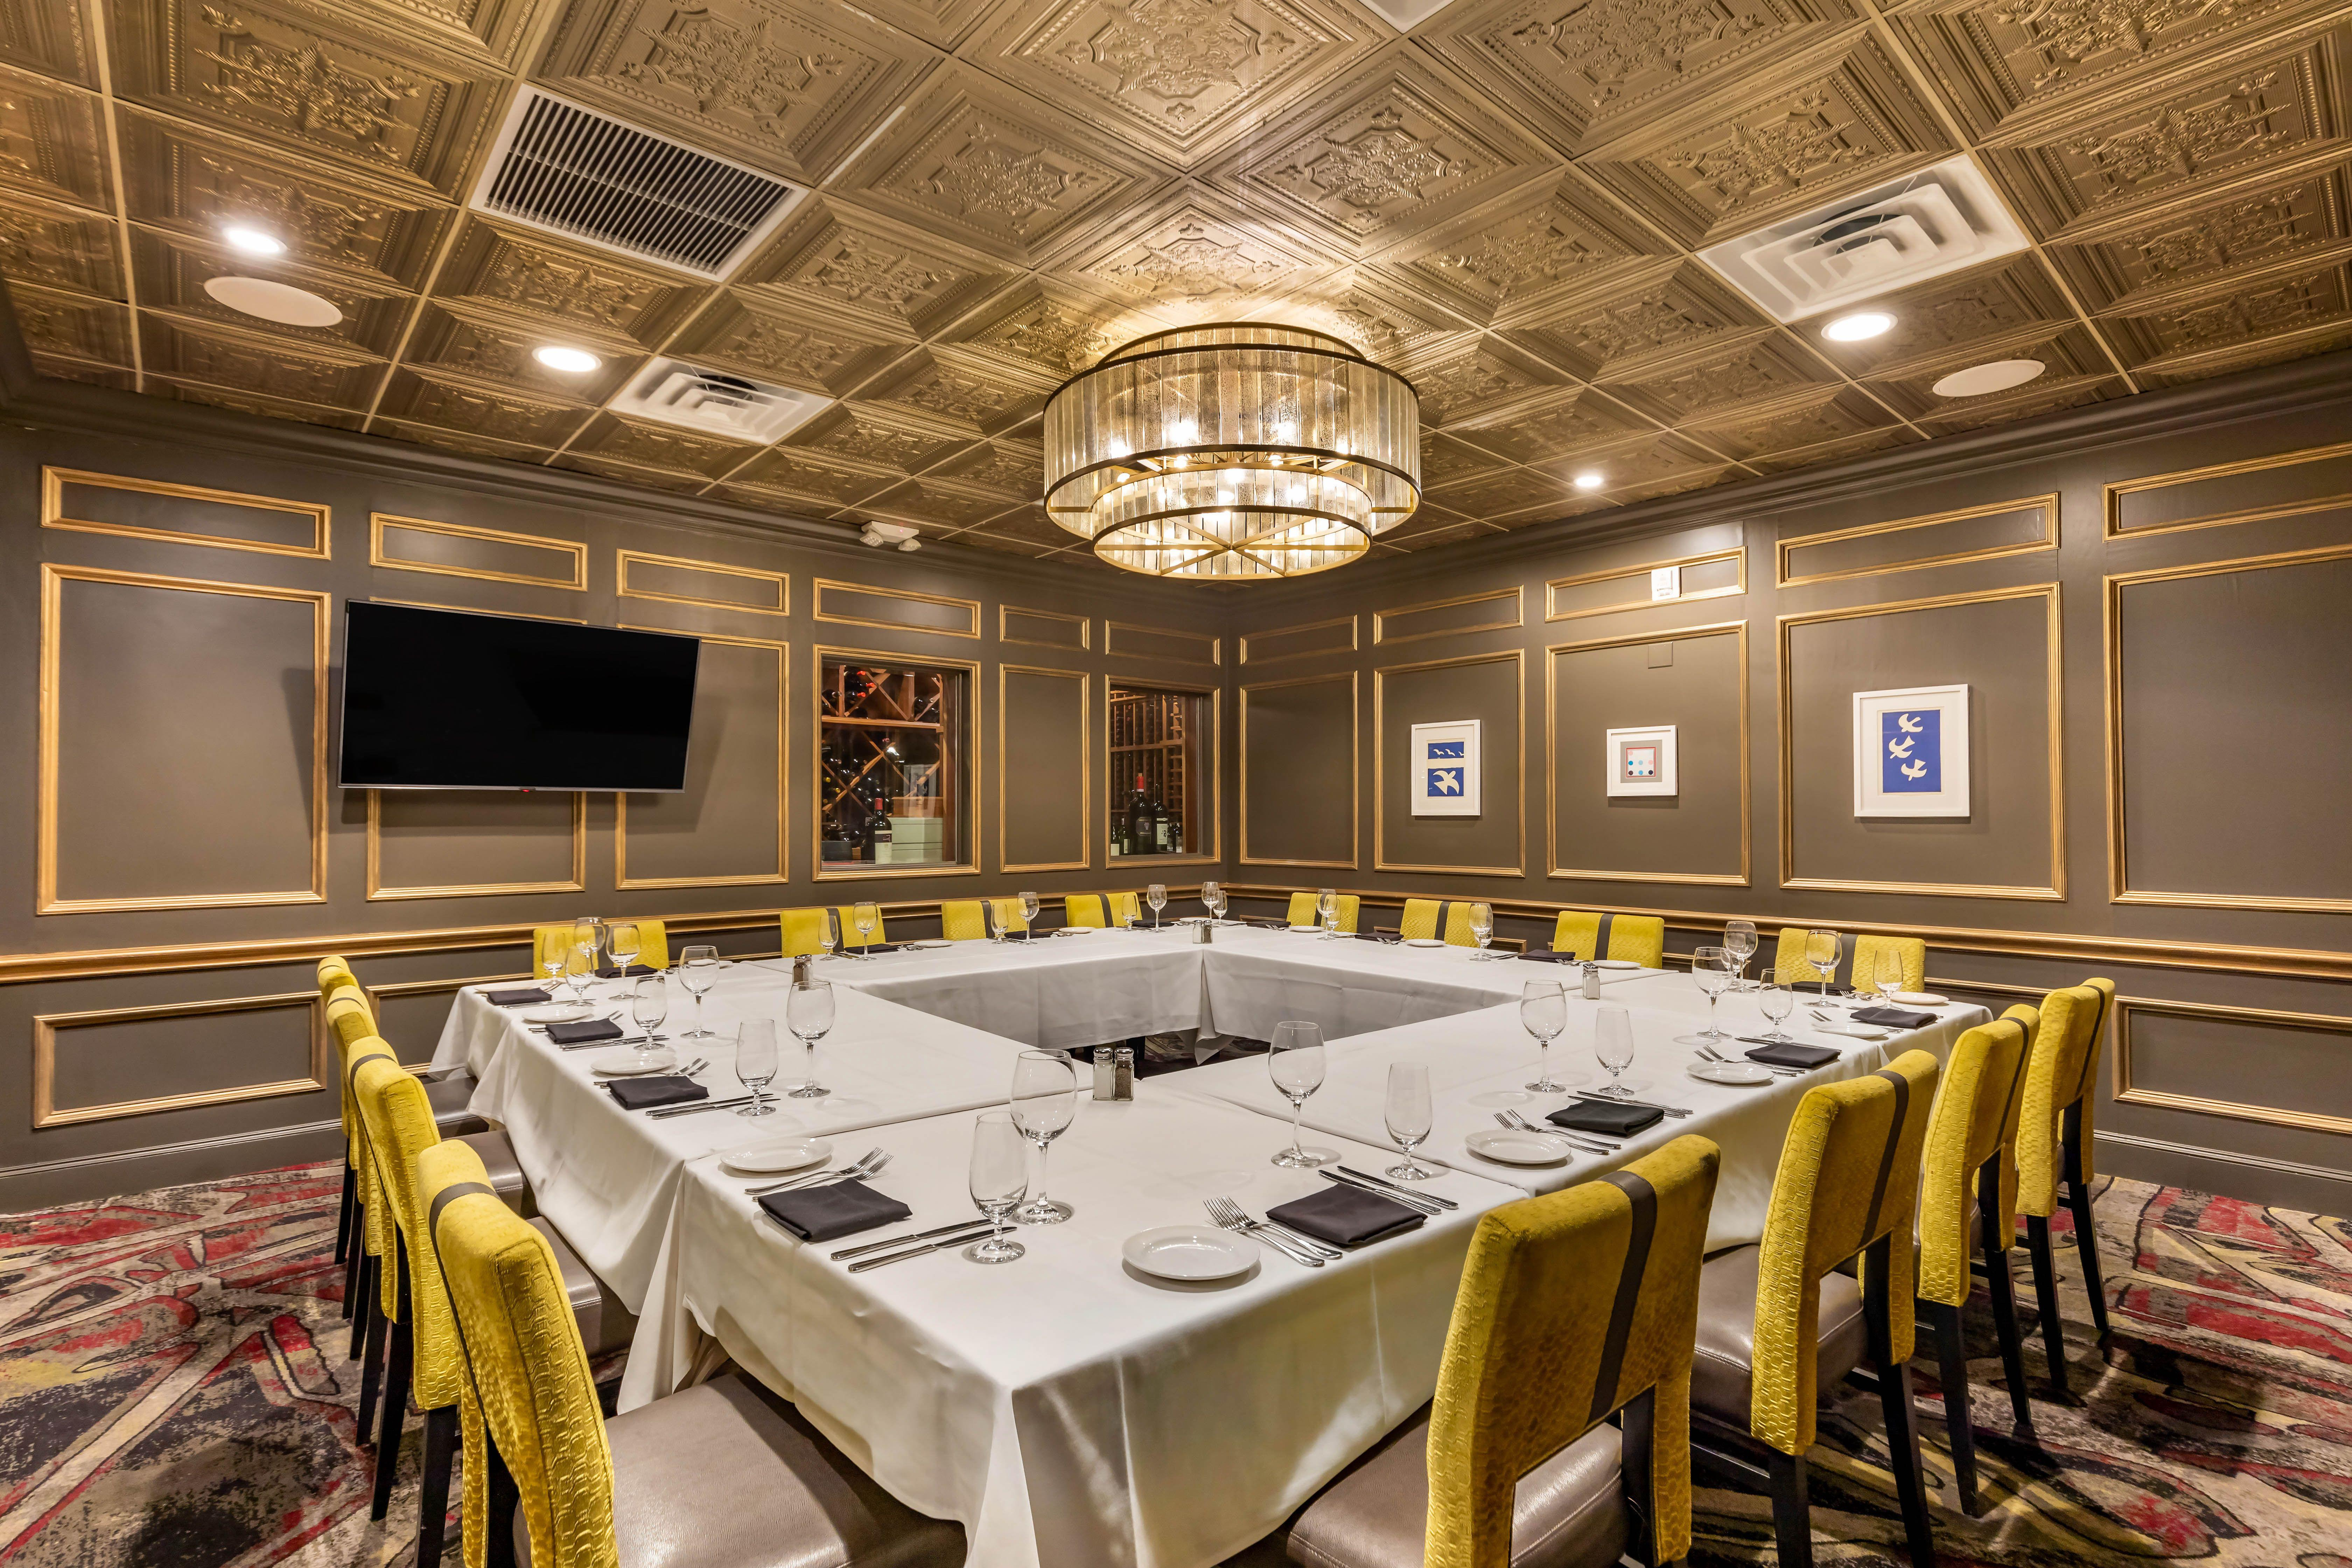 Del Frisco's Double Eagle Steakhouse Las Vegas The Vesper Room private dining room